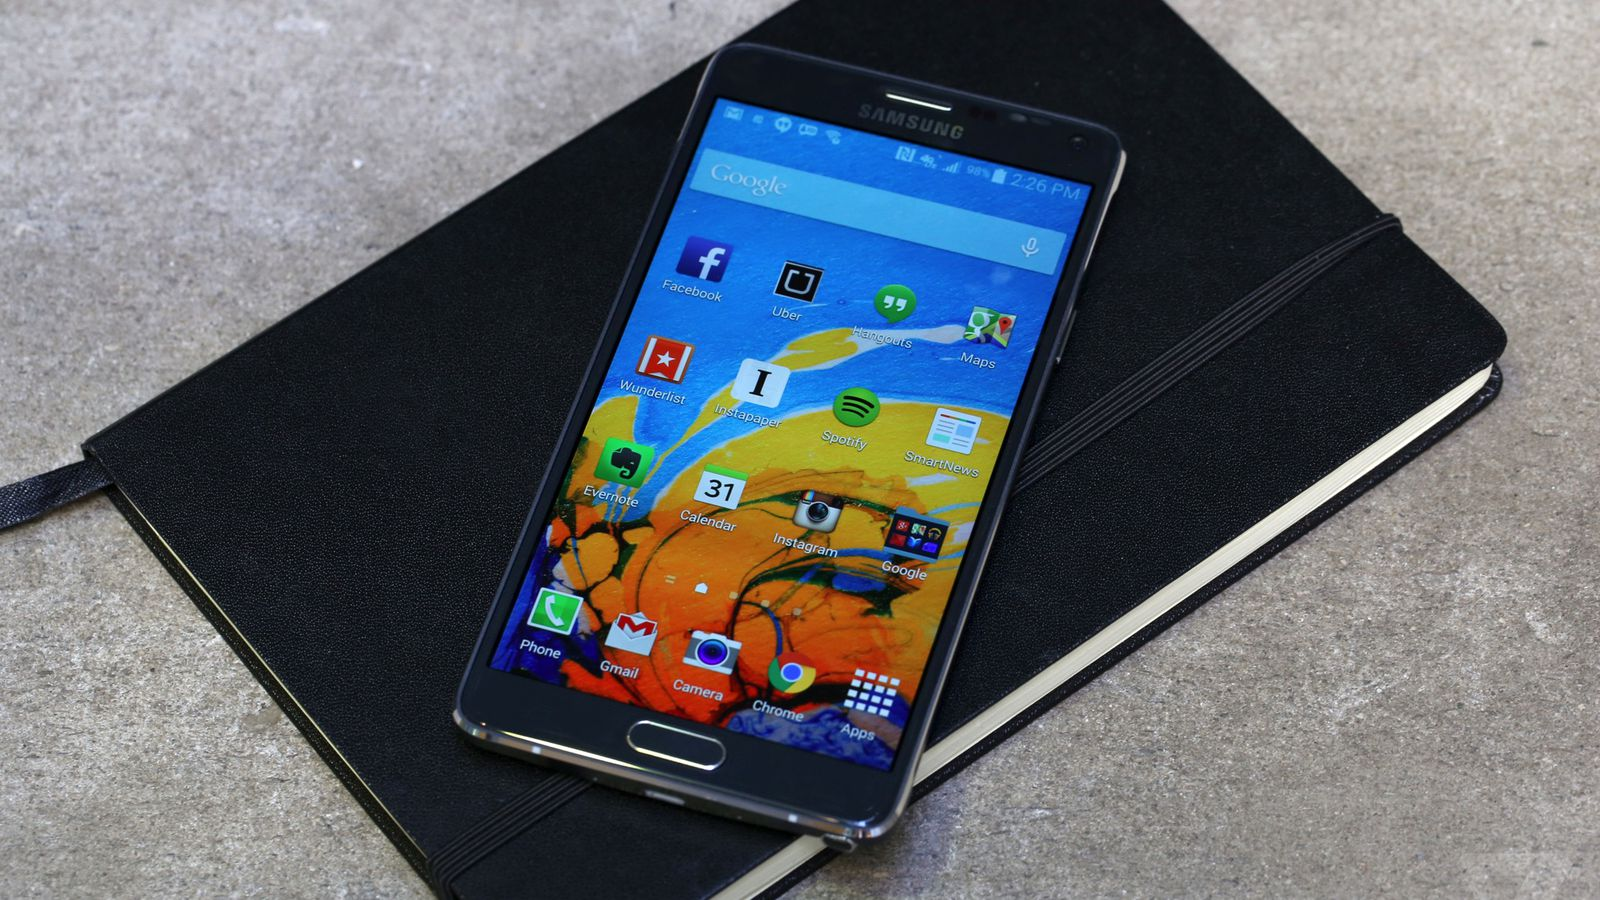 samsung galaxy note 4 review the verge samsung galaxy note 4 review the verge